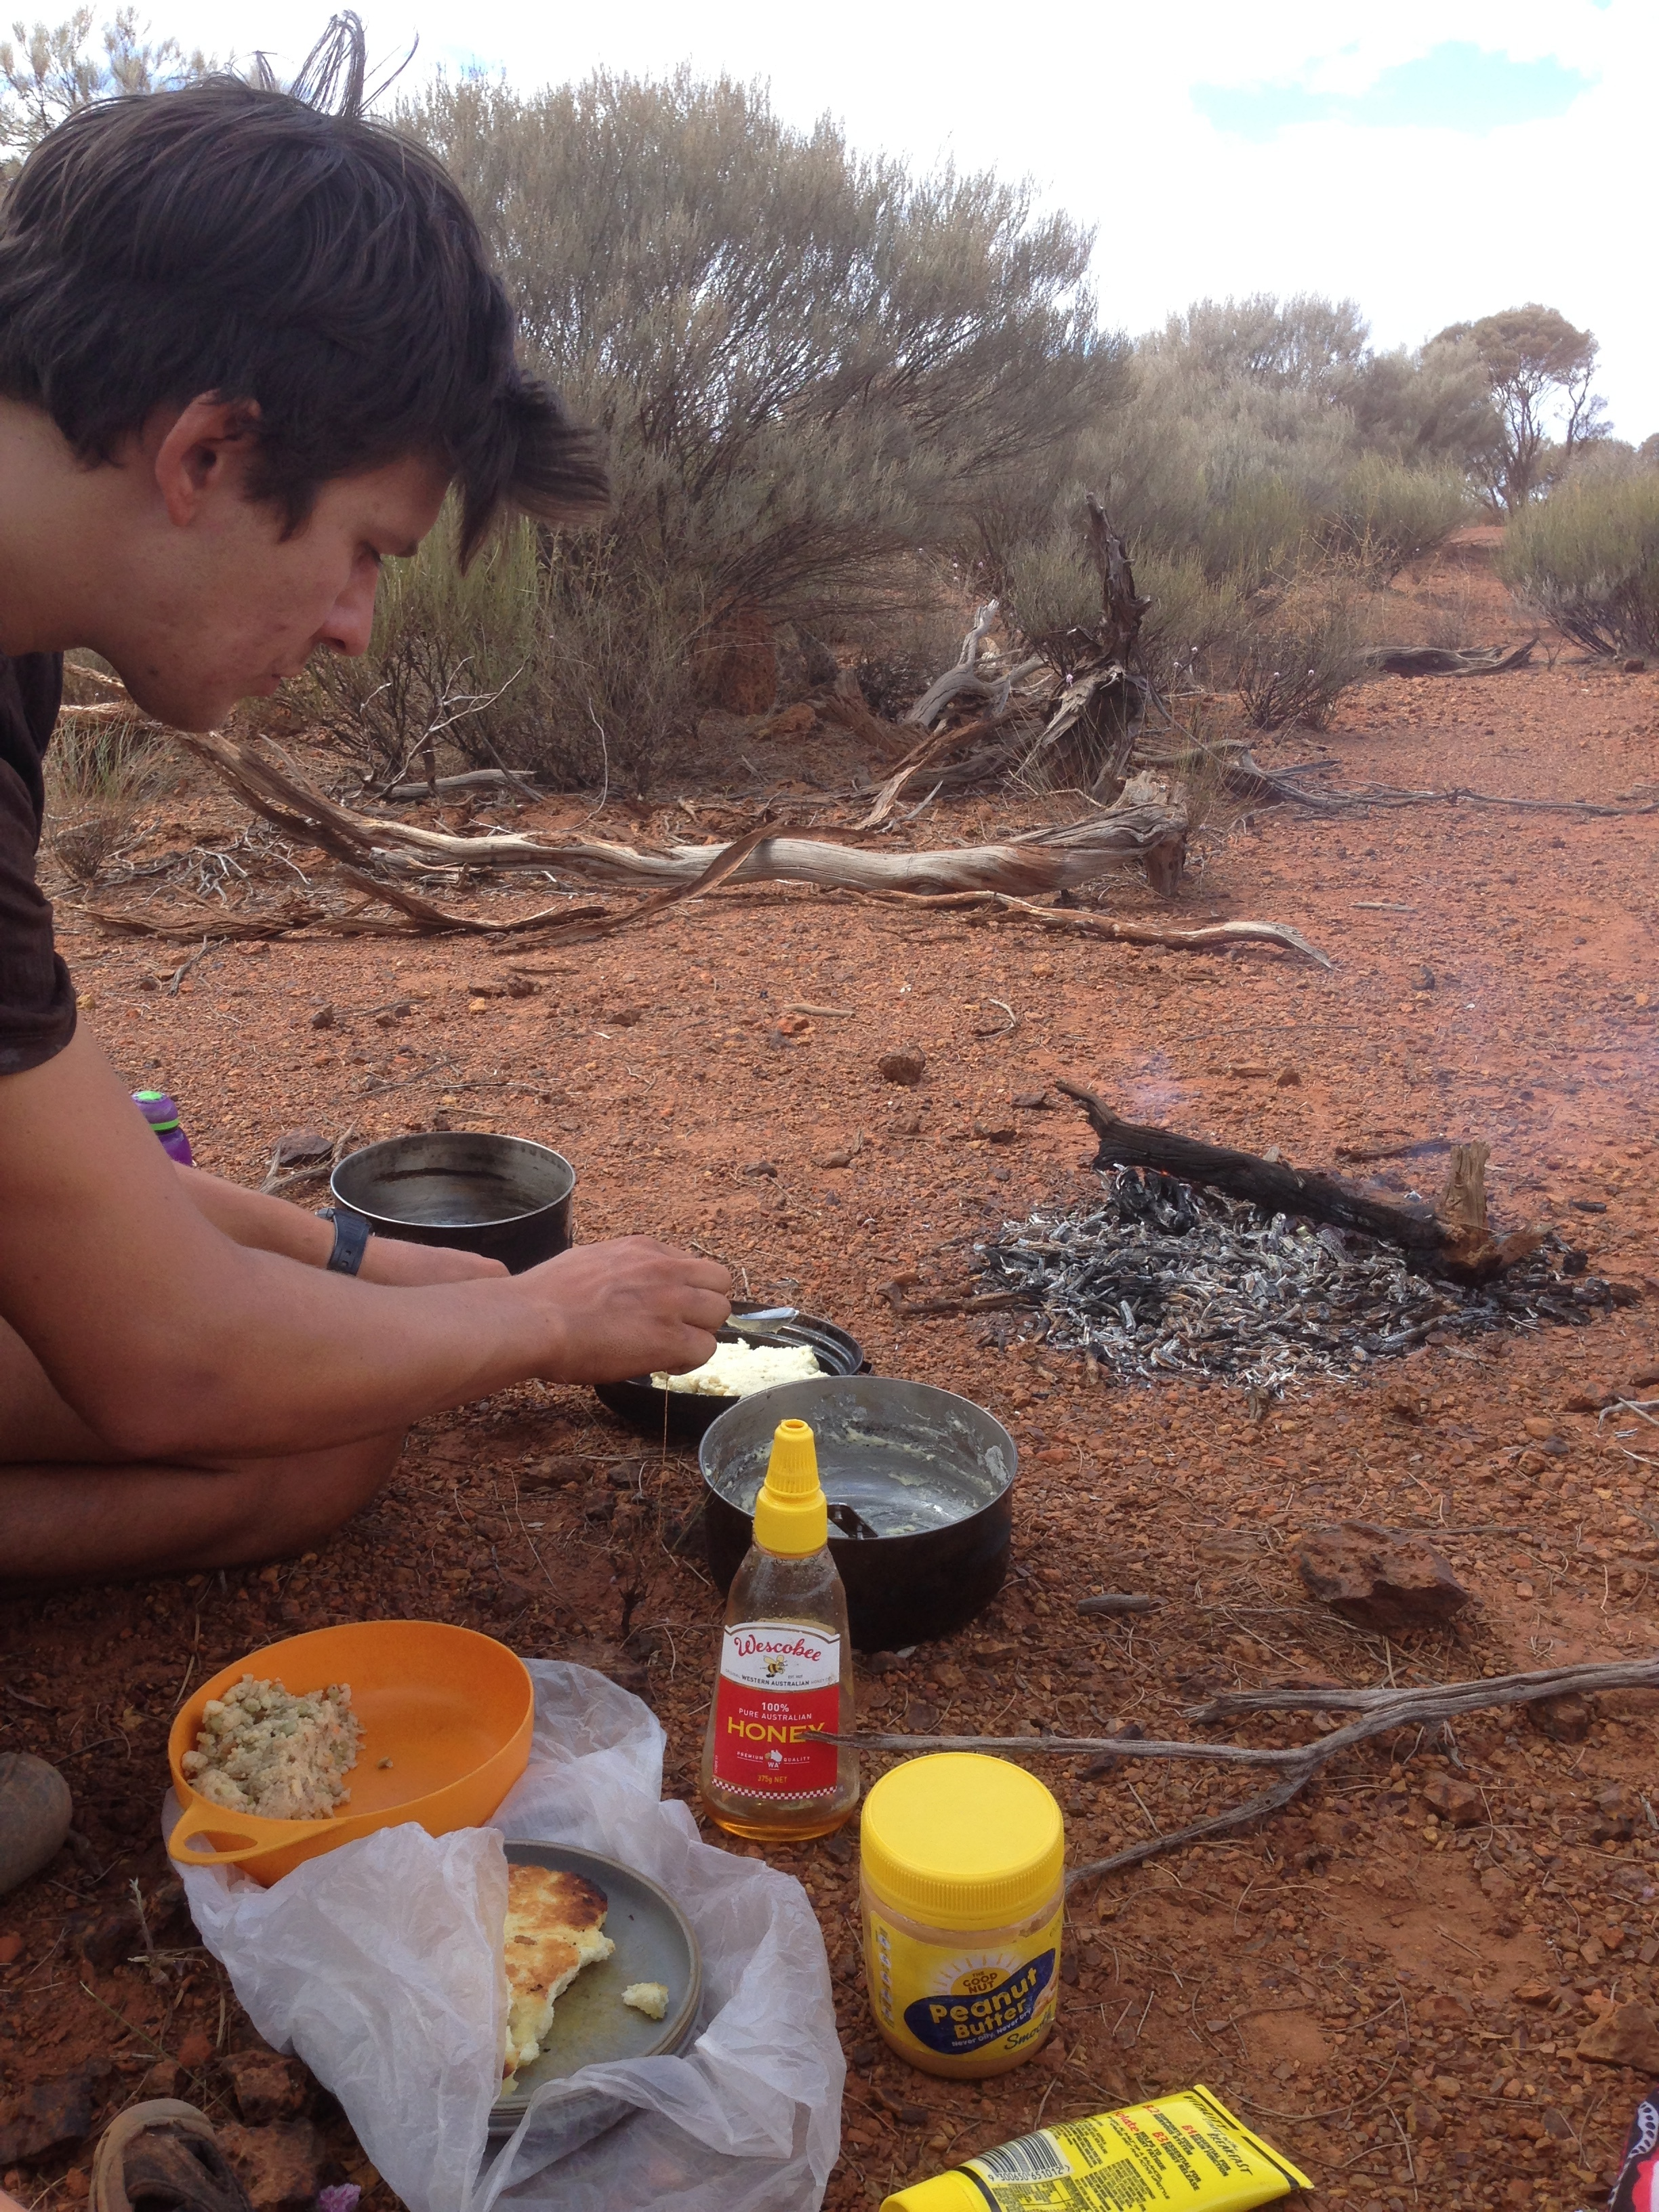 Out of food = make fire, damper lunch